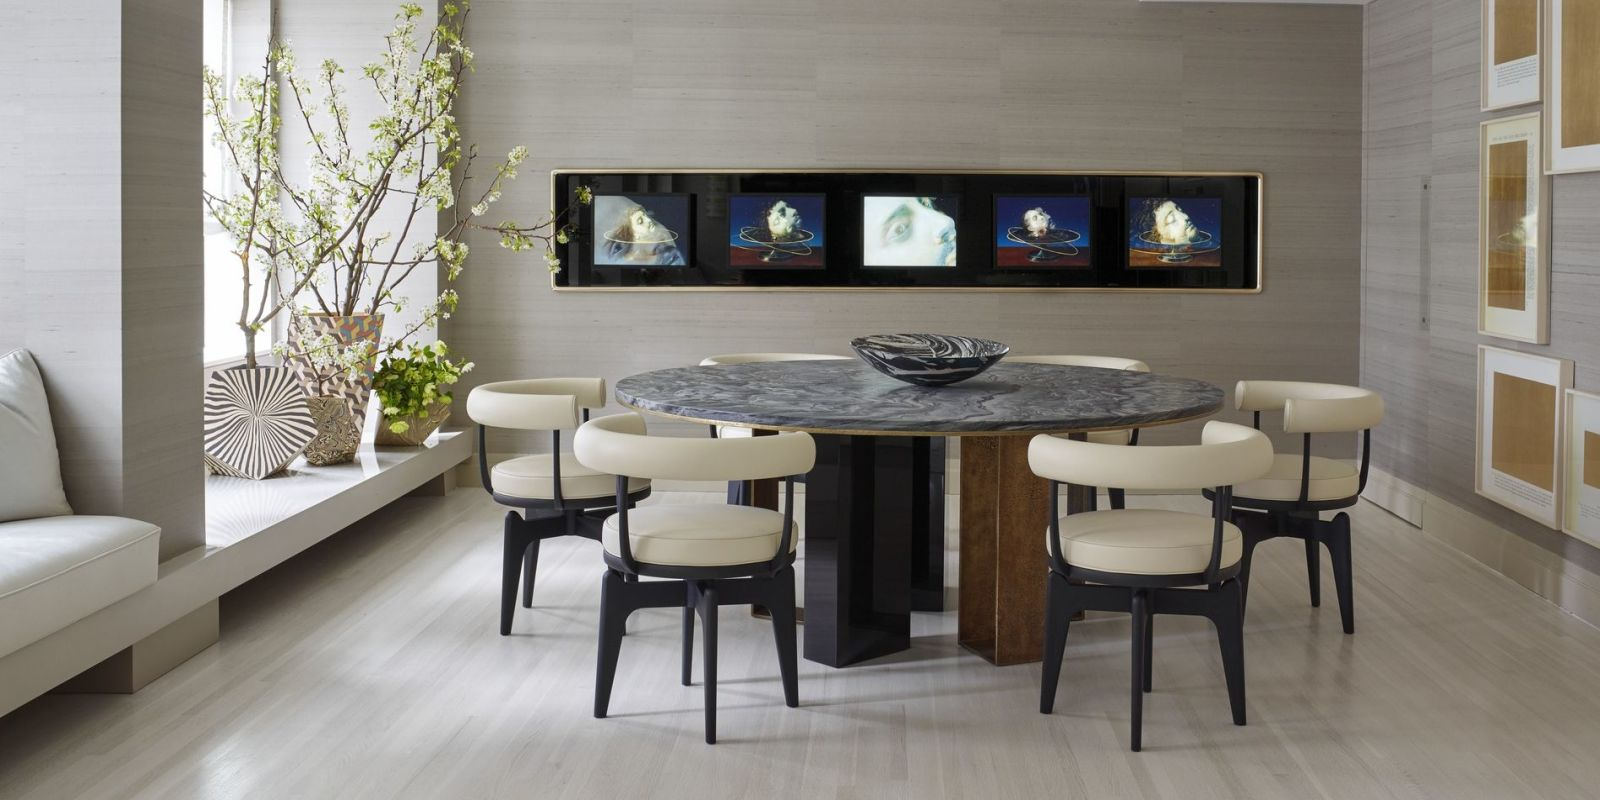 25 modern dining room decorating ideas contemporary for Dining room design ideas